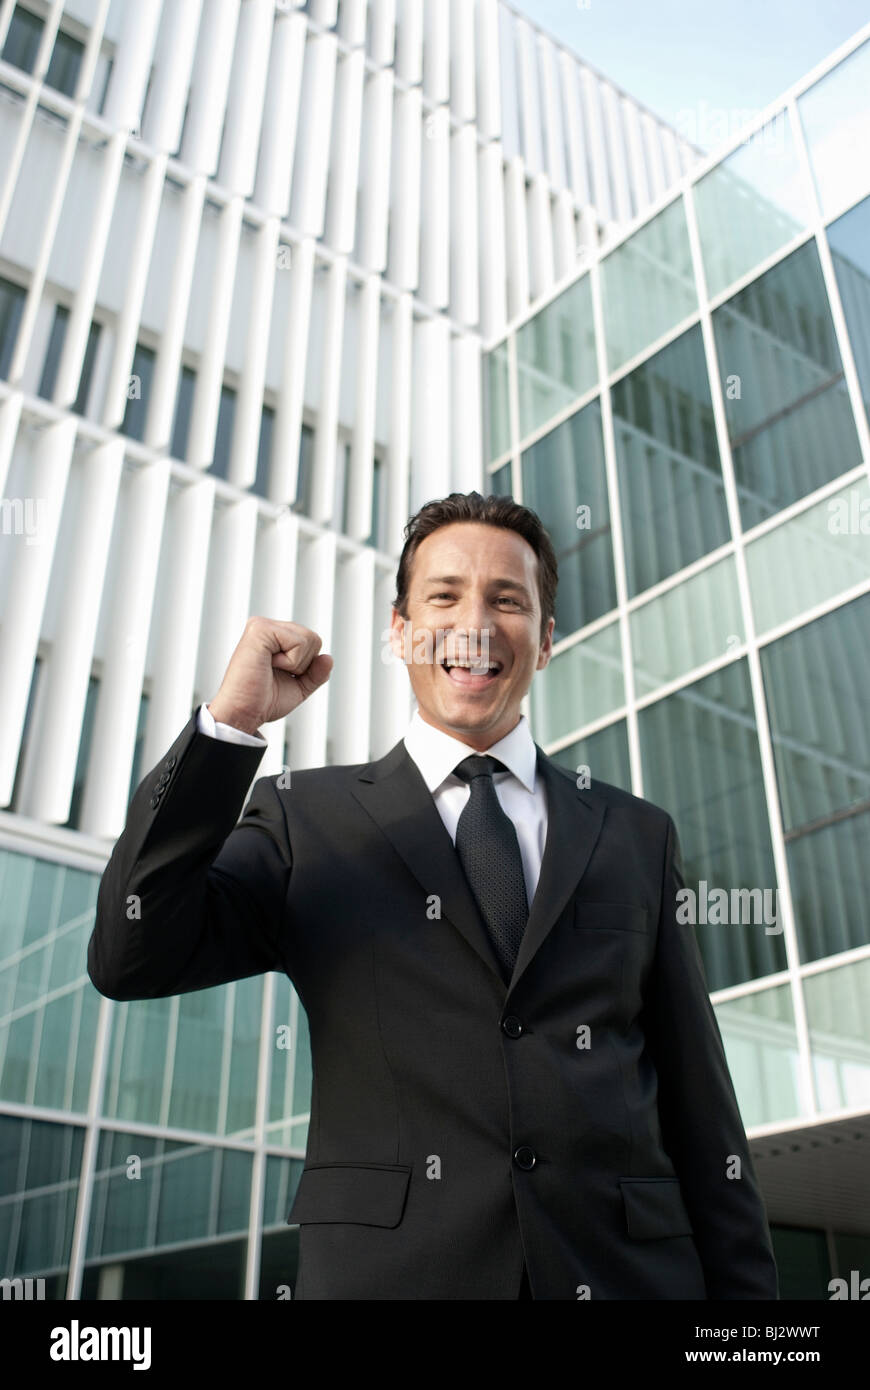 Businessman punching the air - Stock Image